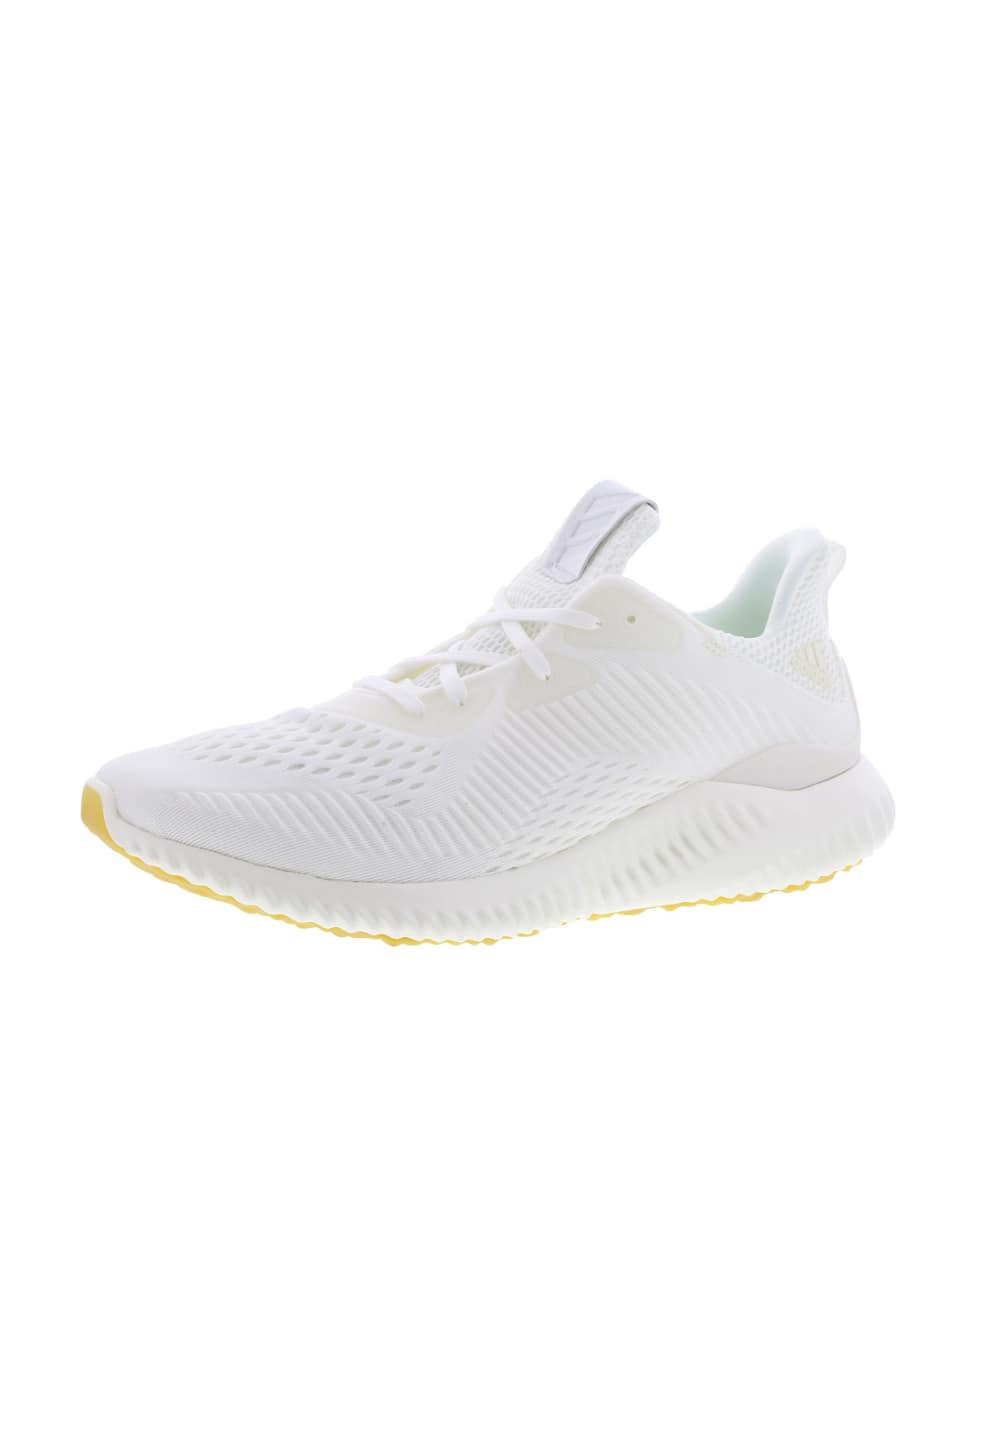 low priced fcc72 f9bb9 adidas alphabounce EM Undye - Running shoes for Men - White